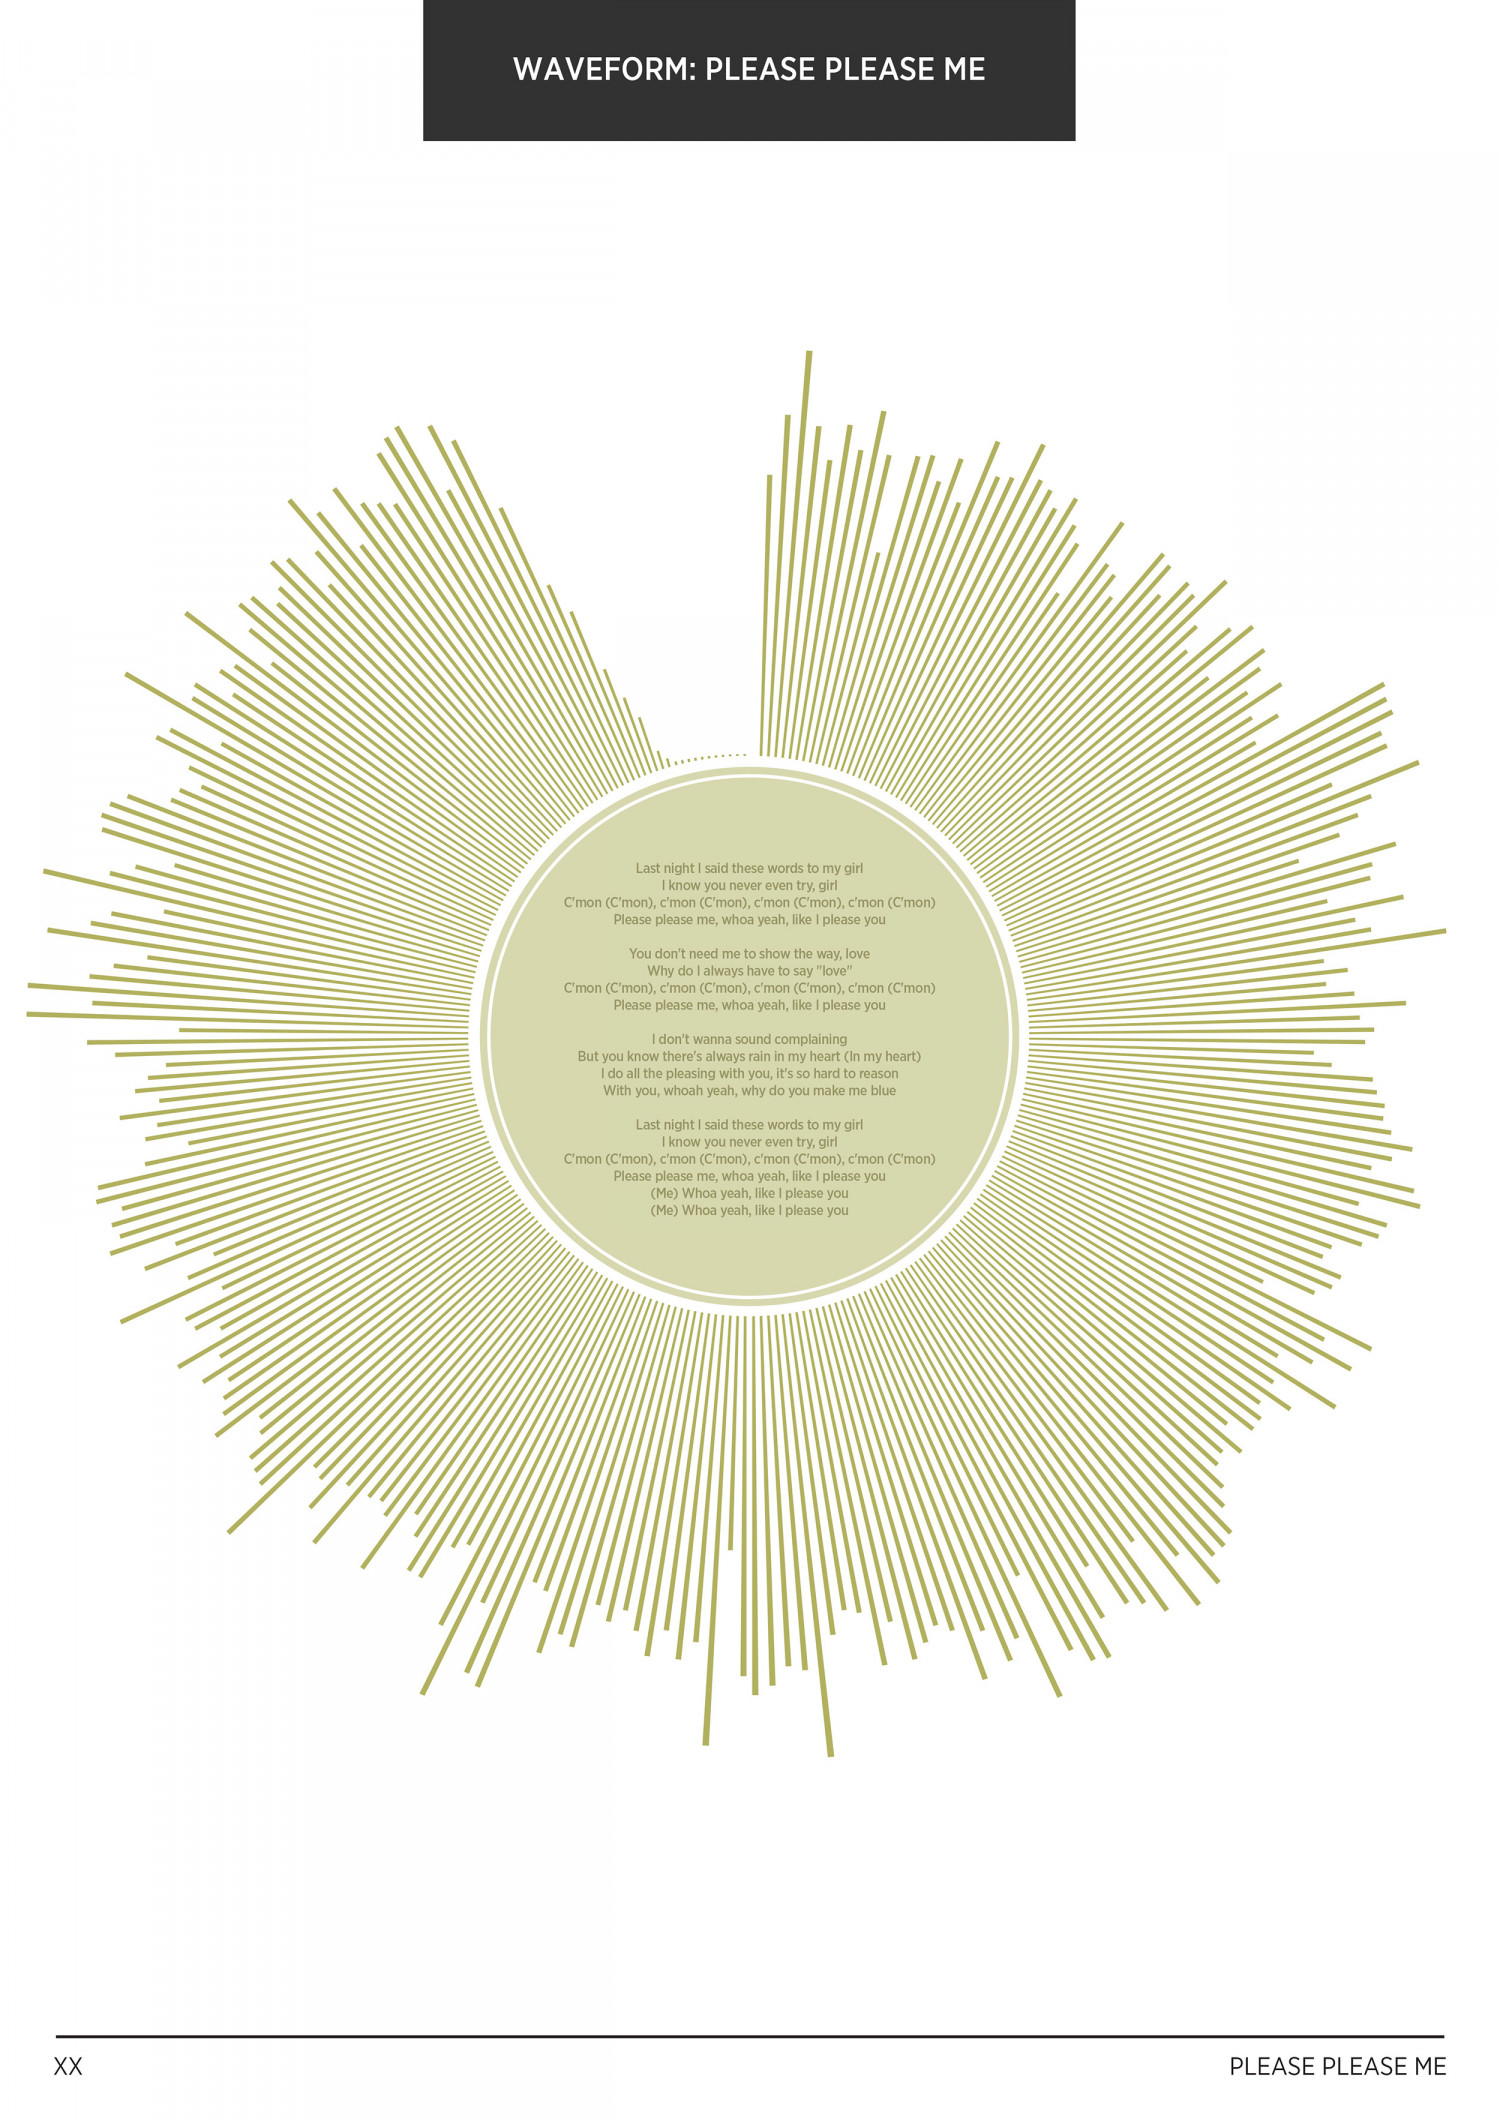 Infographic - Please, Please Me by The Beatles, Visualized